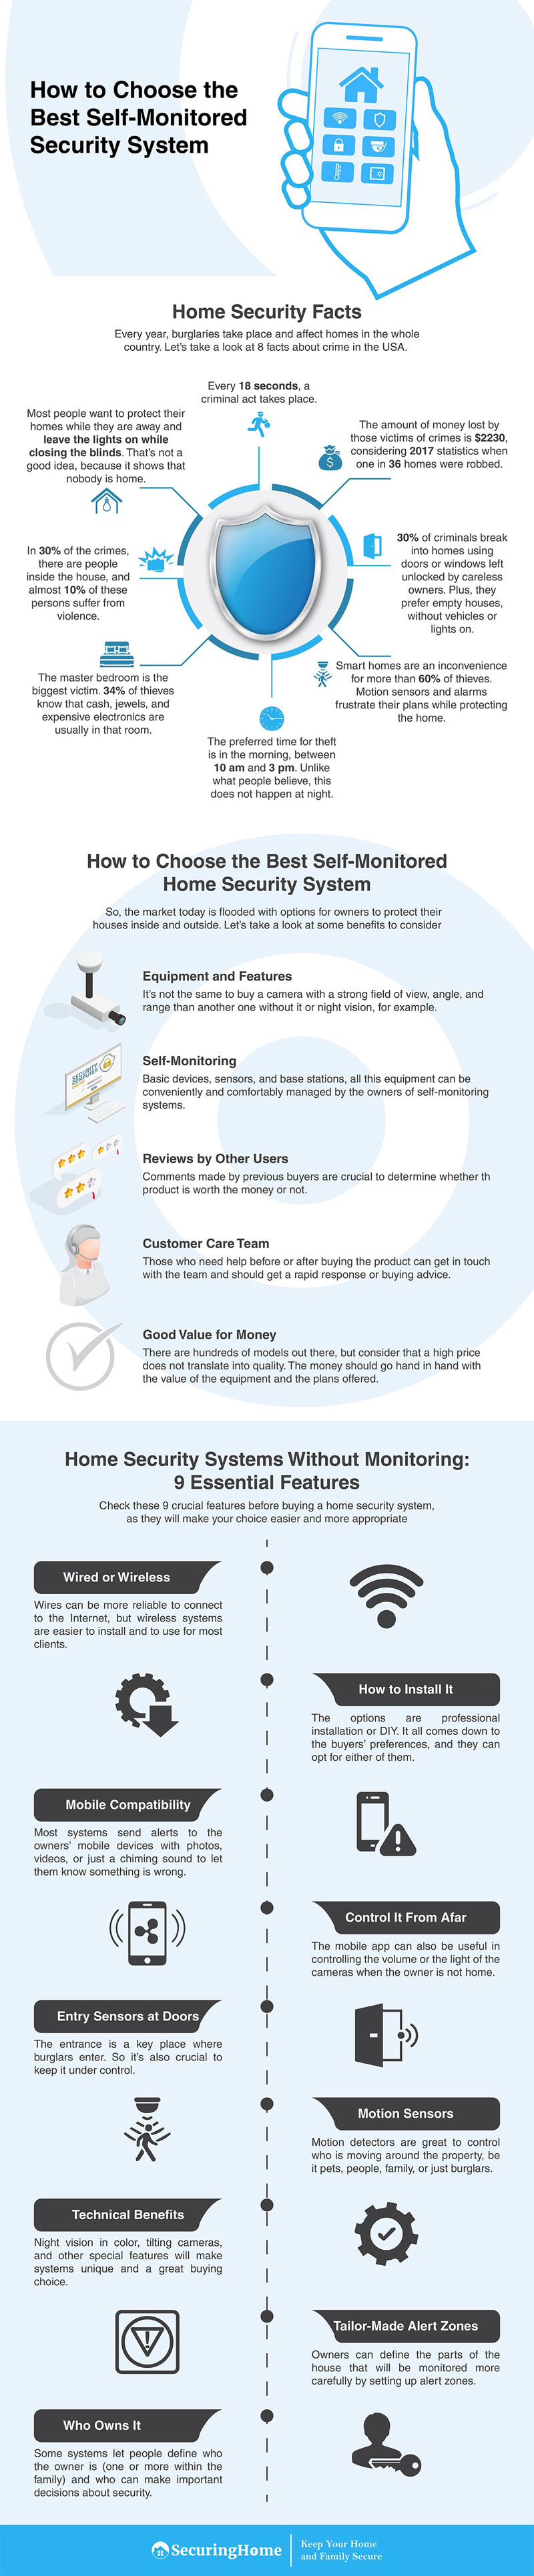 How to Choose the Best Self-Monitored Security System